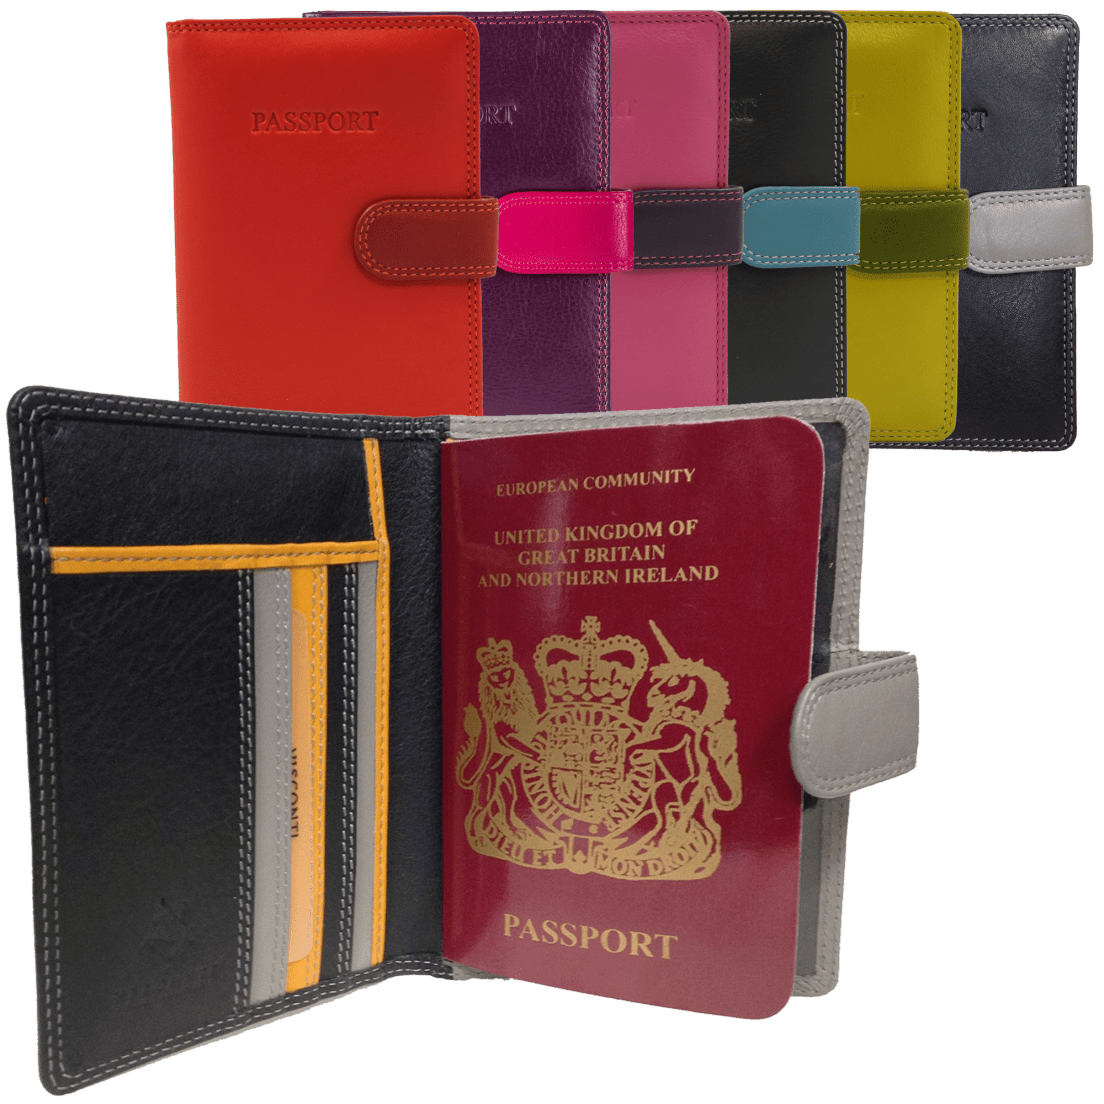 Visconti Rfid Id Theft Protection Leather Passport Wallet W Button Dolly Jims Honey Closure